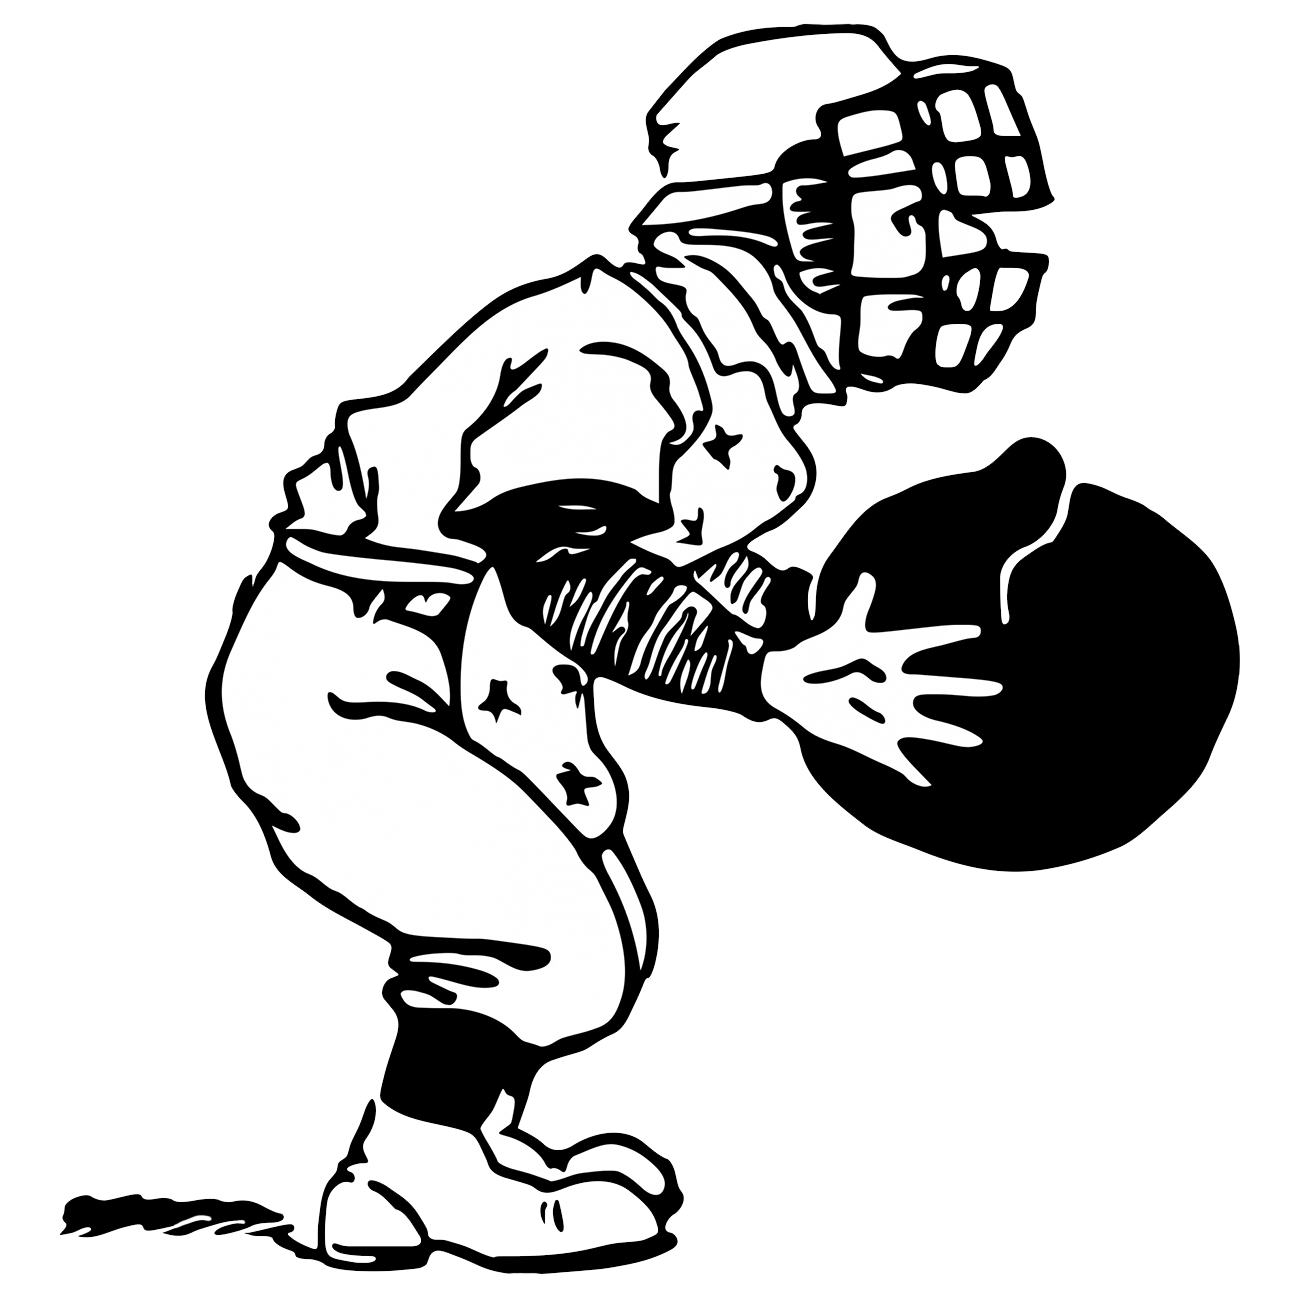 Catcher clipart baseball pitcher. Player